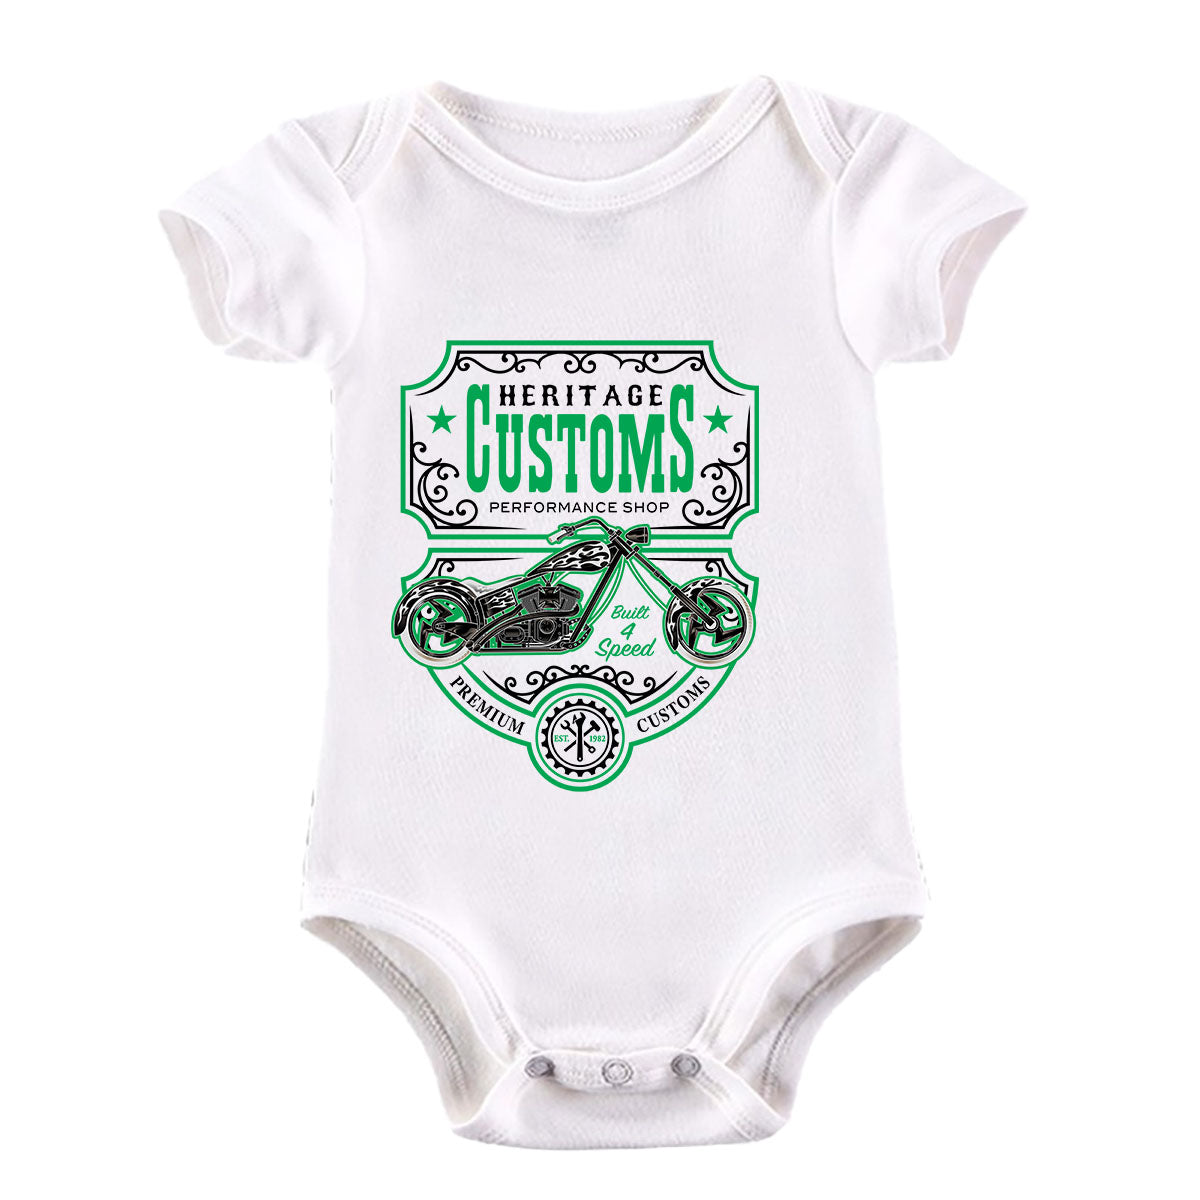 Biker Heritage Customs Motorbike Motorcycle Cafe Racer Chopper Bike White Baby & Toddler Body Suit